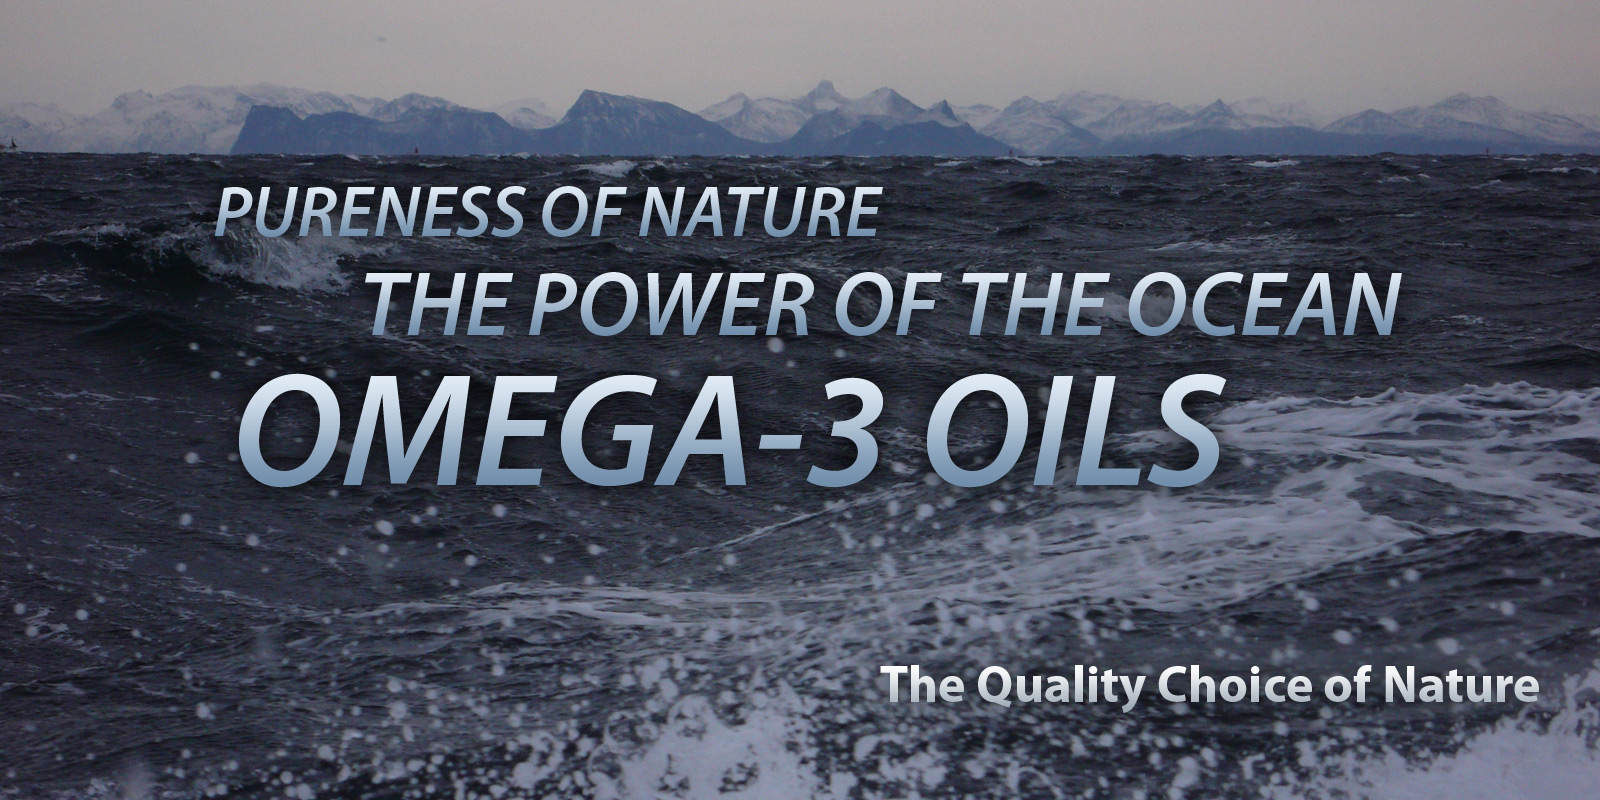 Pureness of Nature The Power of the Ocean Omega-3 Oils The Quality Choice of Nature